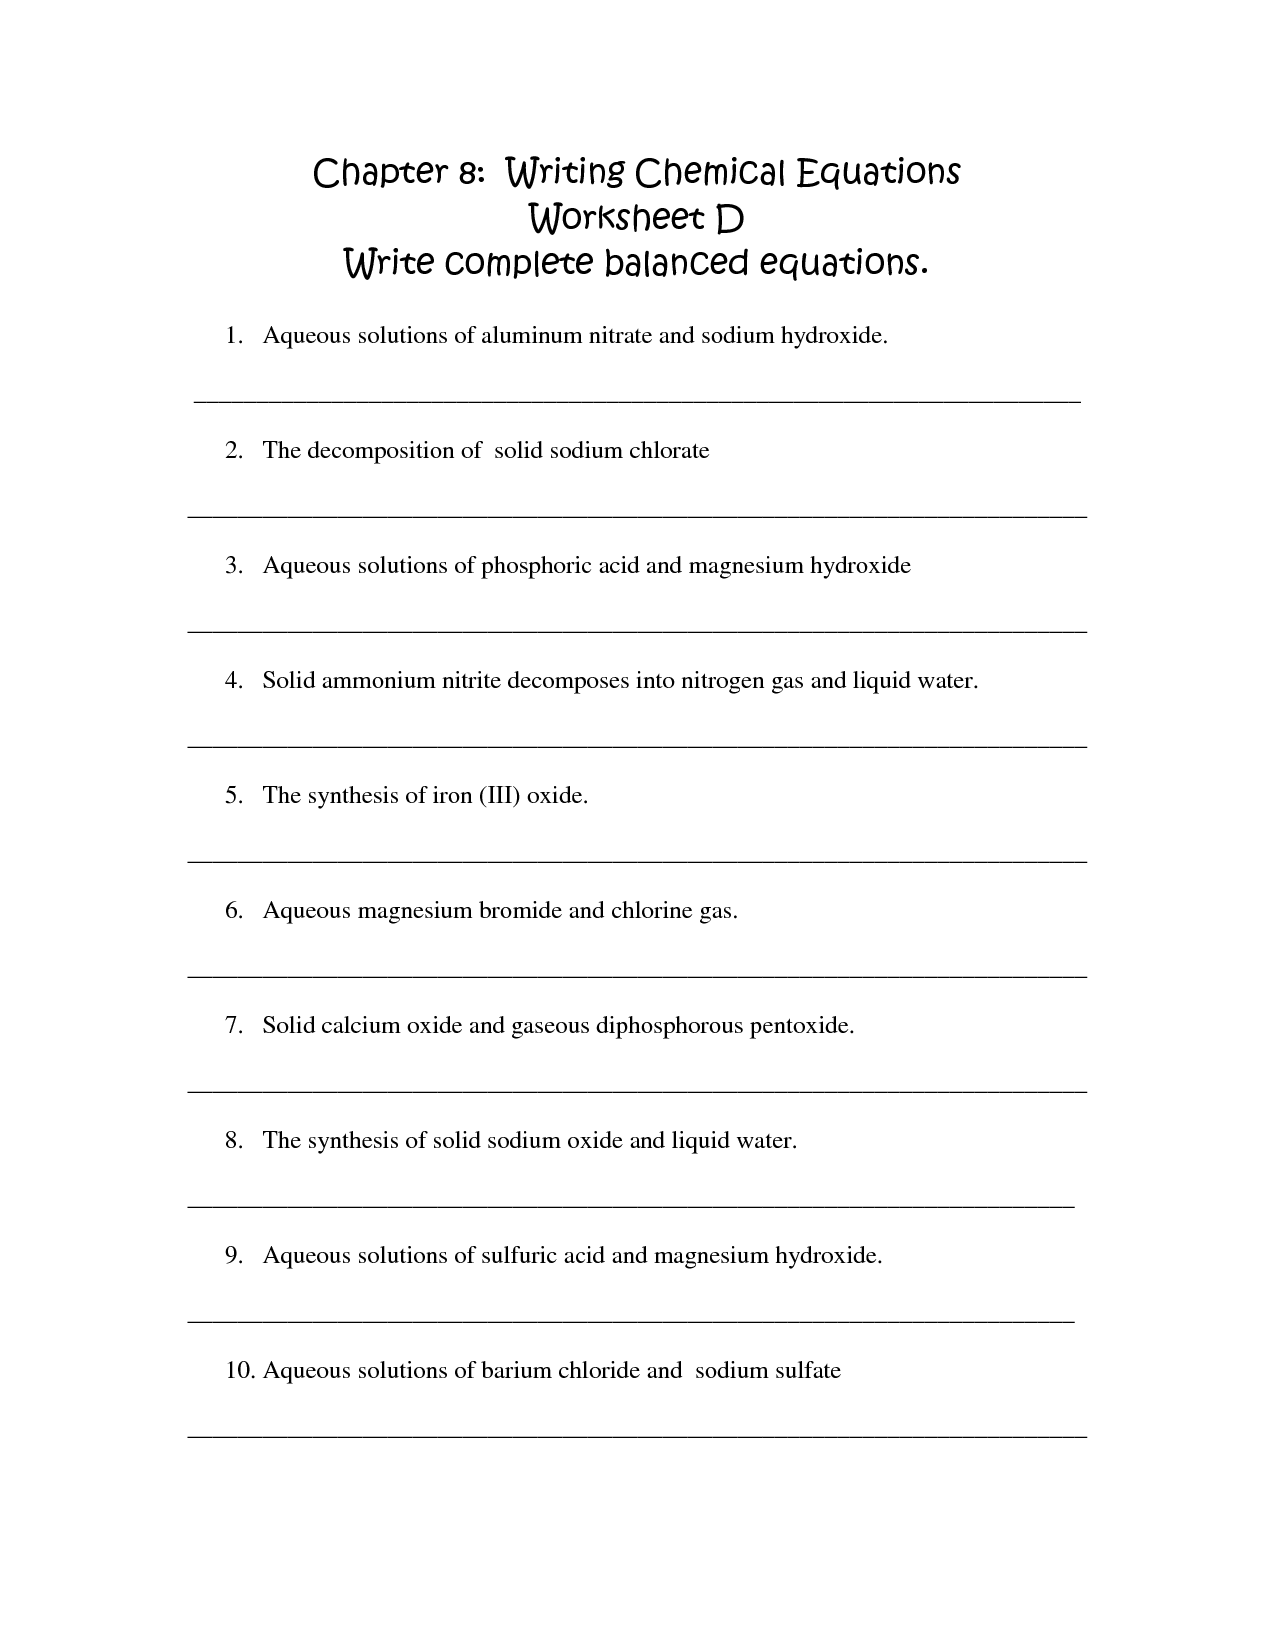 Writing Balanced Equations Worksheet